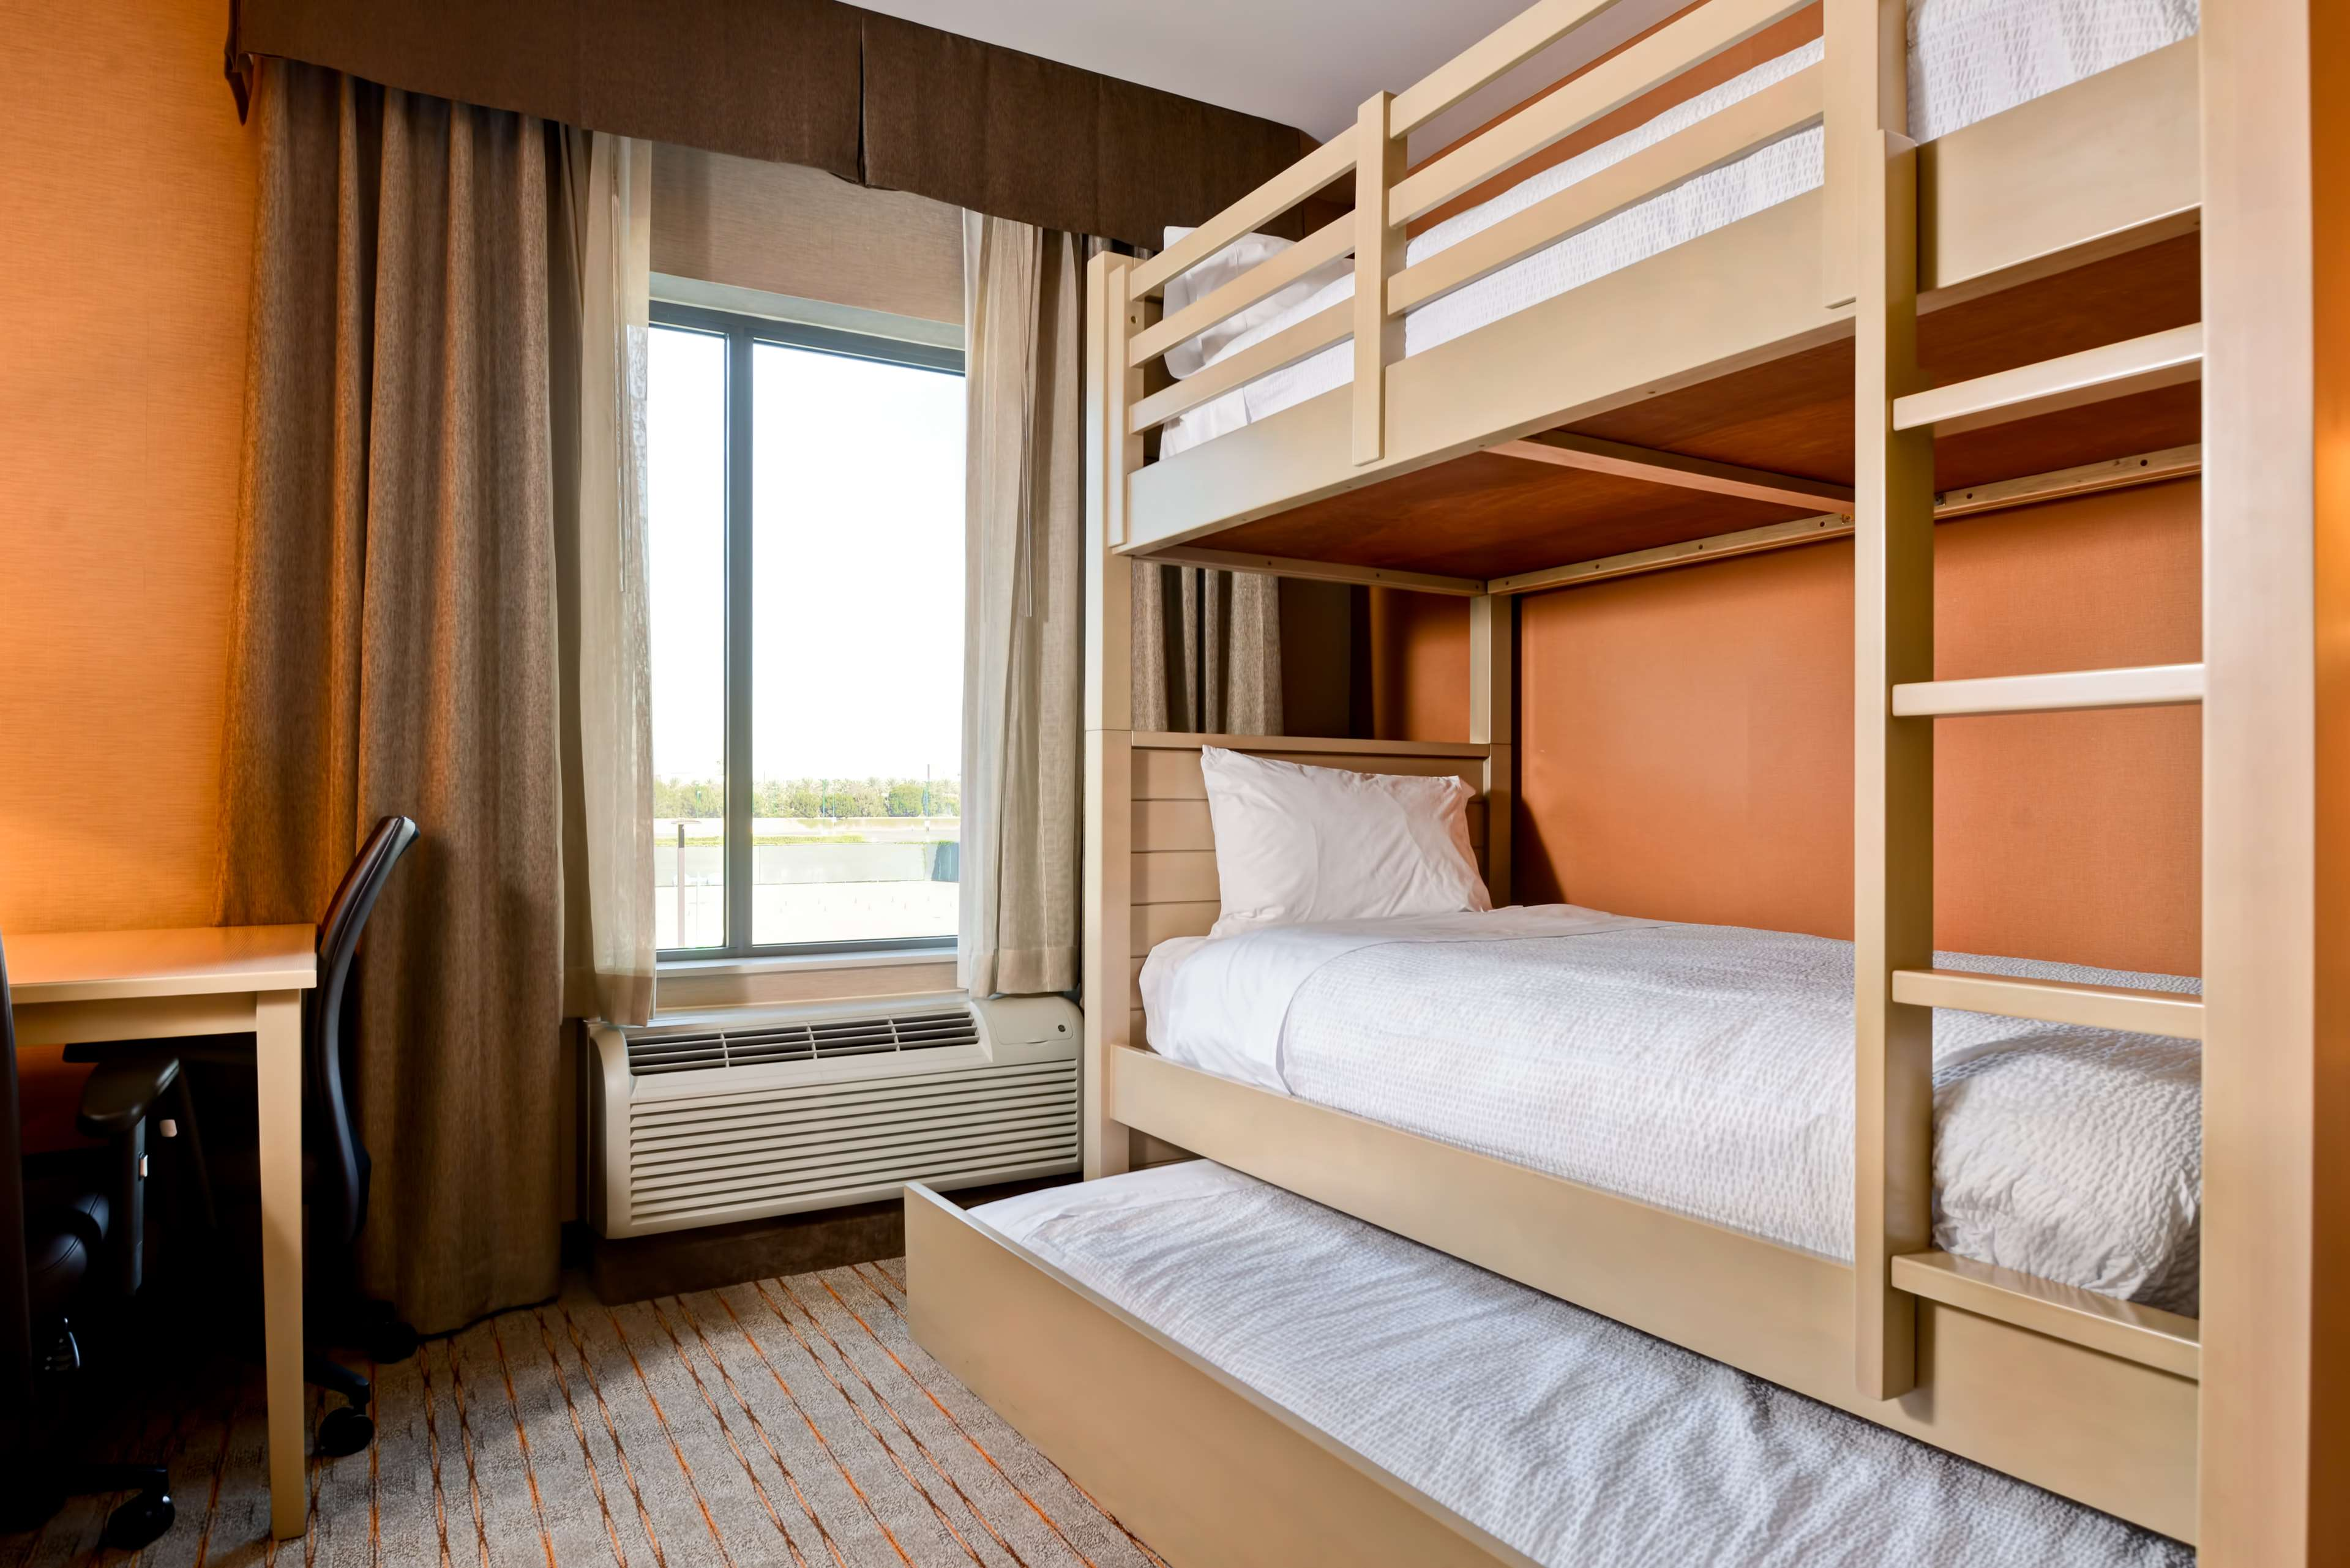 Homewood Suites by Hilton Anaheim Resort - Convention Center image 16